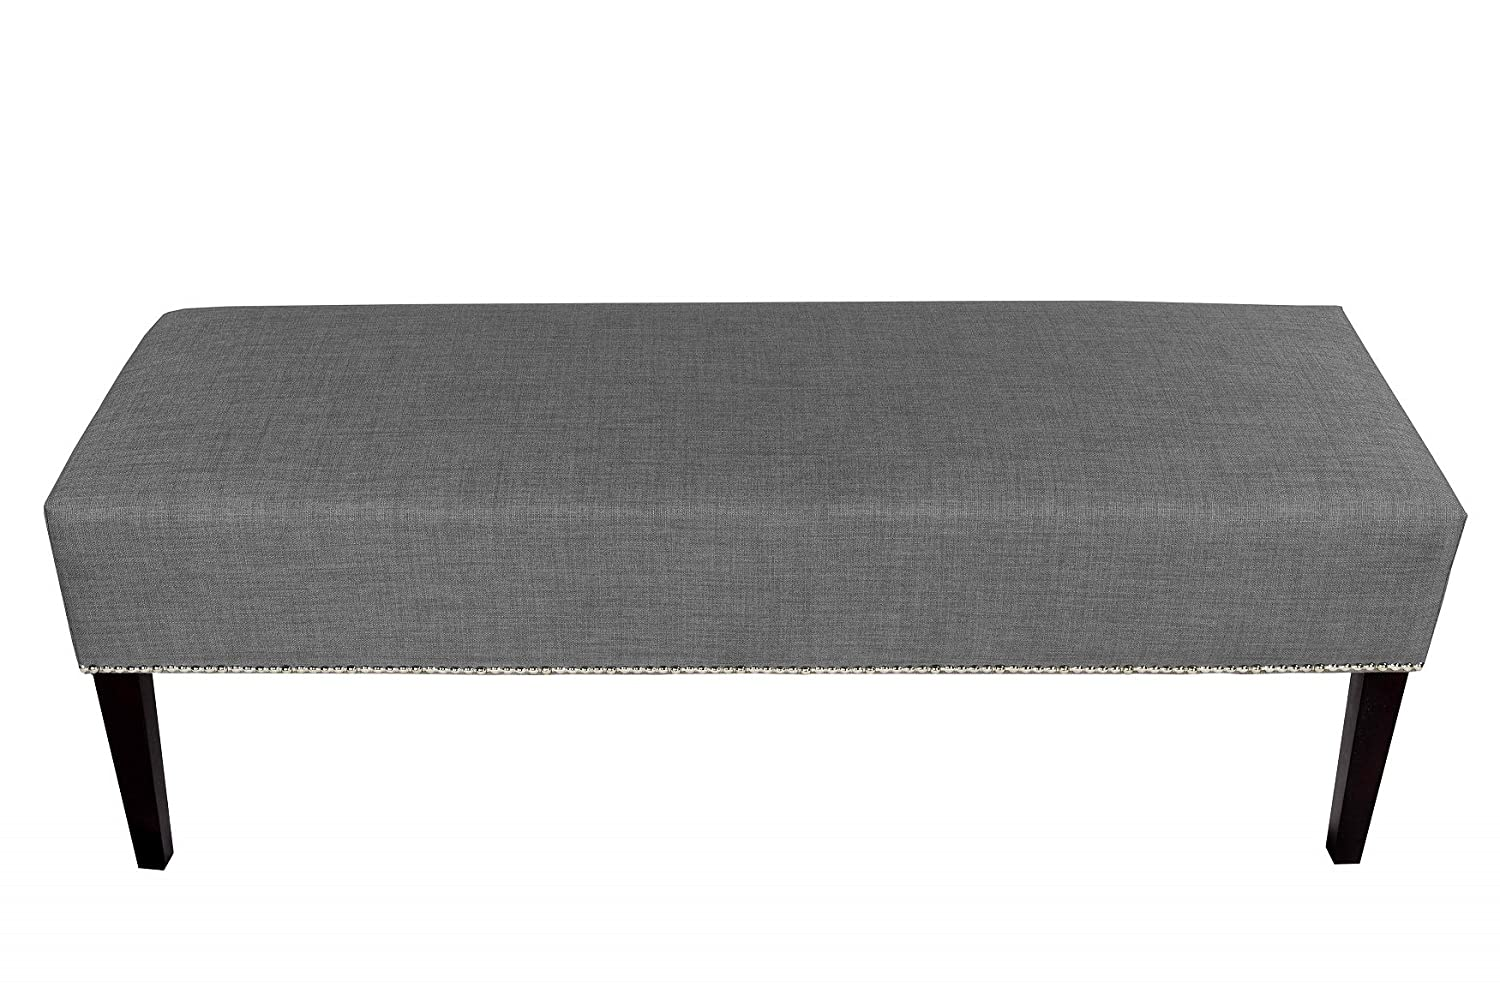 MJL Furniture Designs Roxanne Collection Padded Upholstered Bedroom Accent Bench, HJM100 Series, Dark Gray